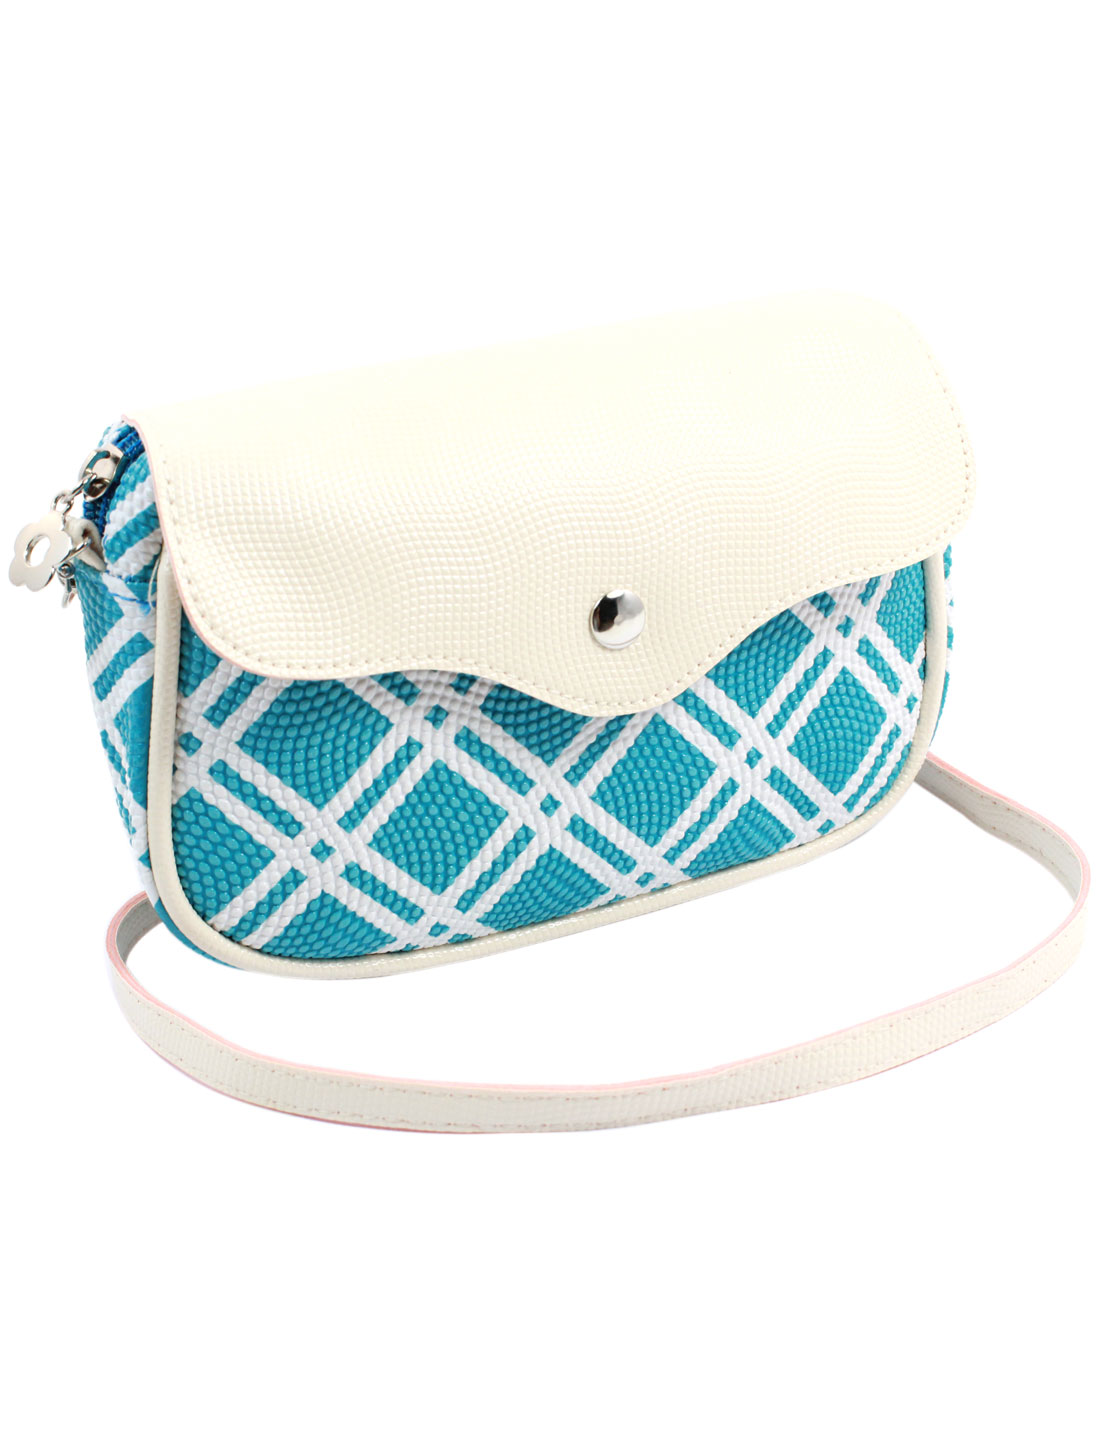 Women 2 Pockets Magnet Button Zipper Closure Check Pattern Faux Leather Wallet Purse Bag Blue White w Strap